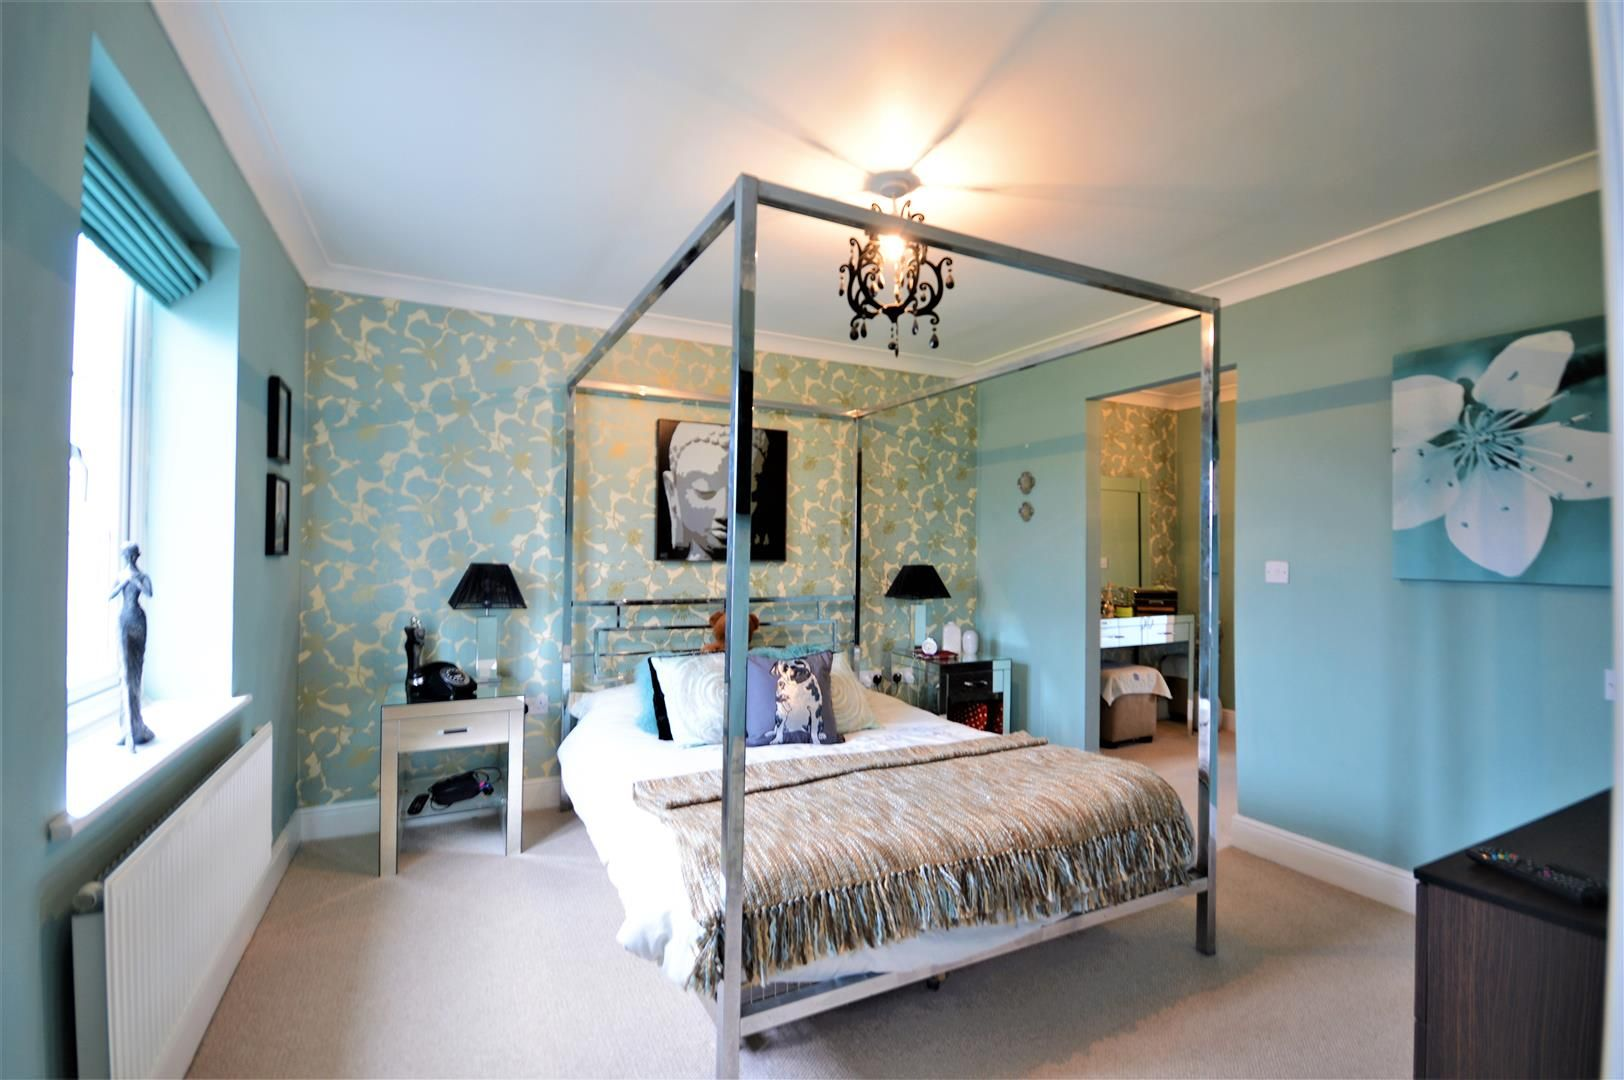 5 bed detached for sale in Kingstone 7